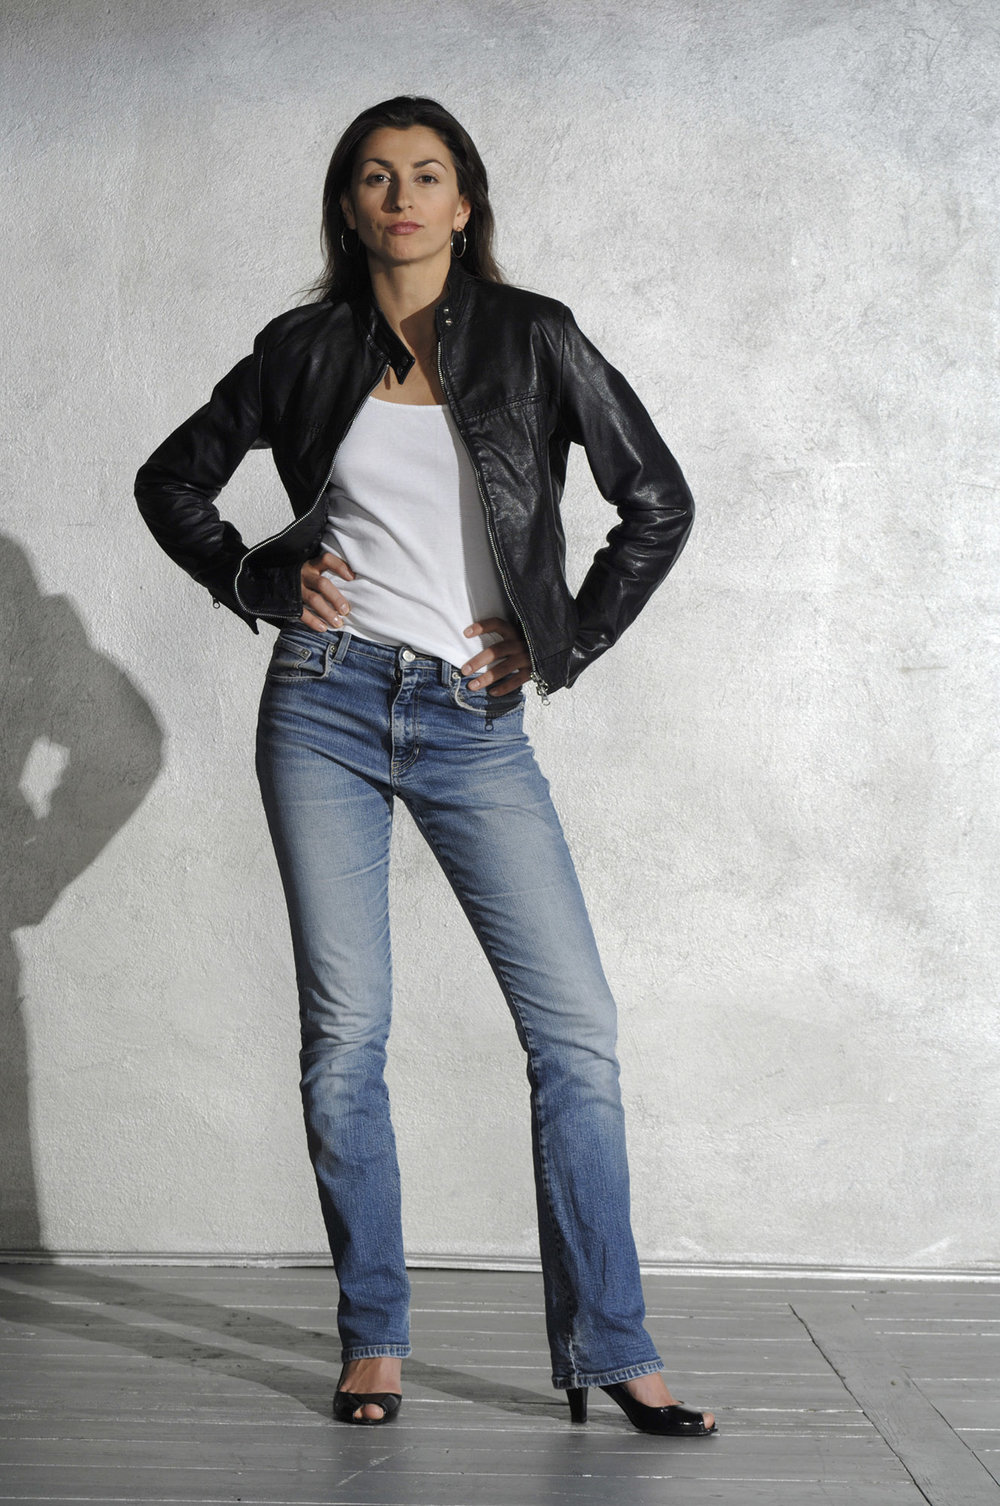 Dominant girl in a black leather jacket  and blue jeans